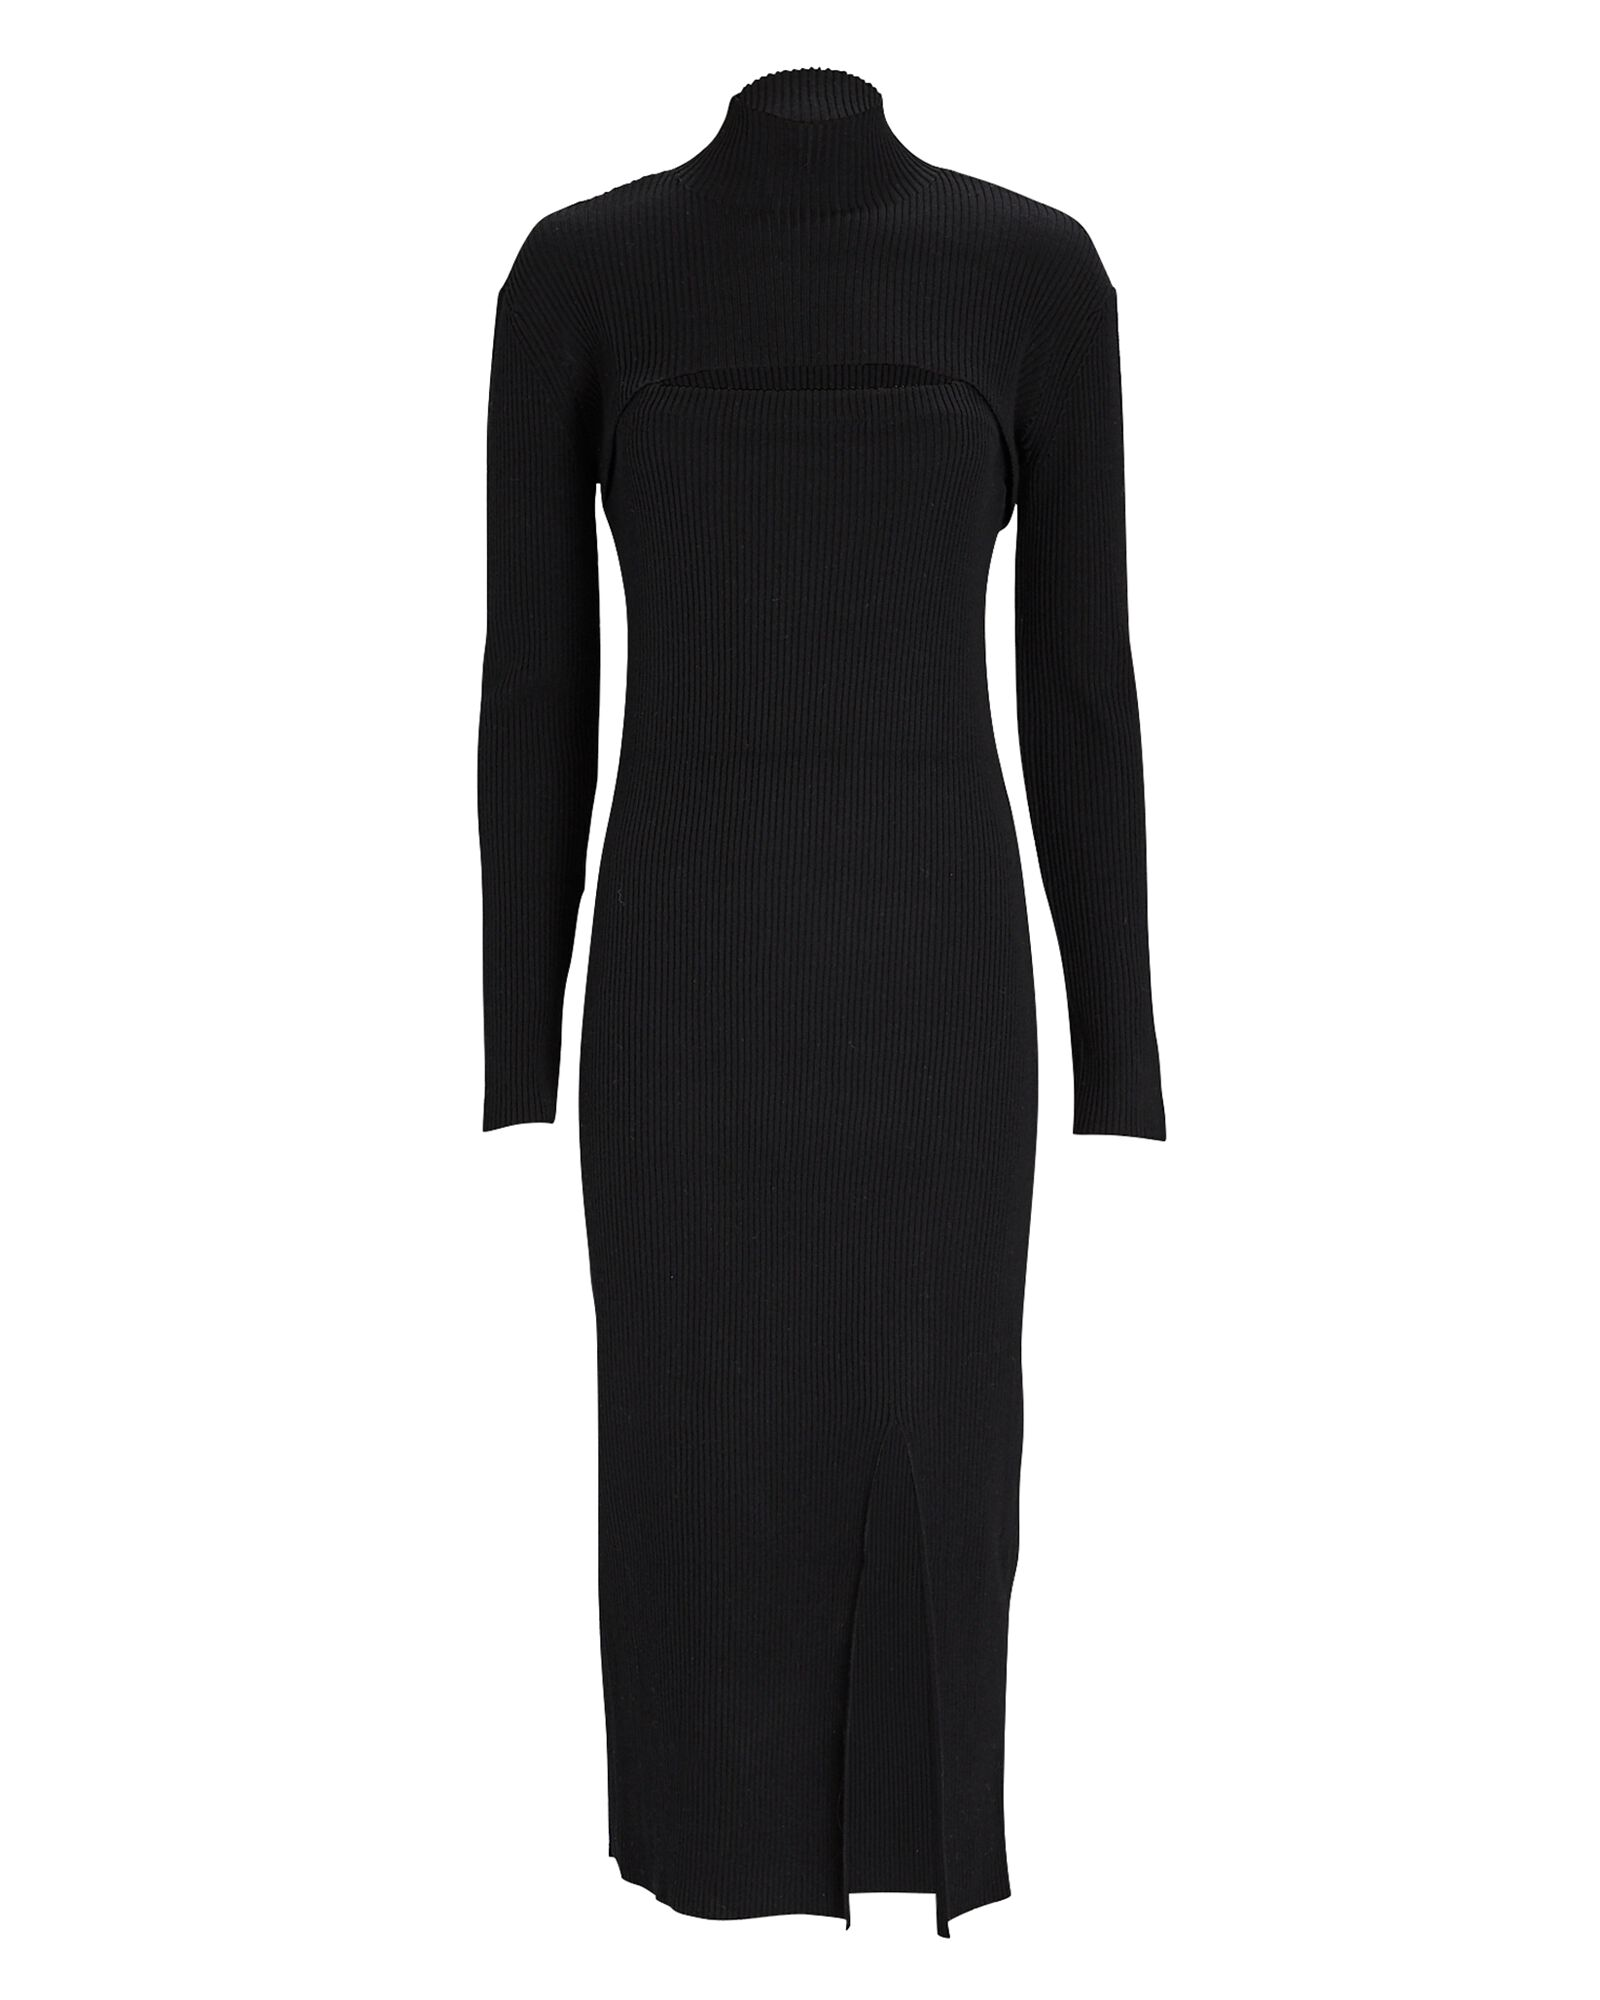 Layered Wool-Blend Knit Midi Dress, BLACK, hi-res